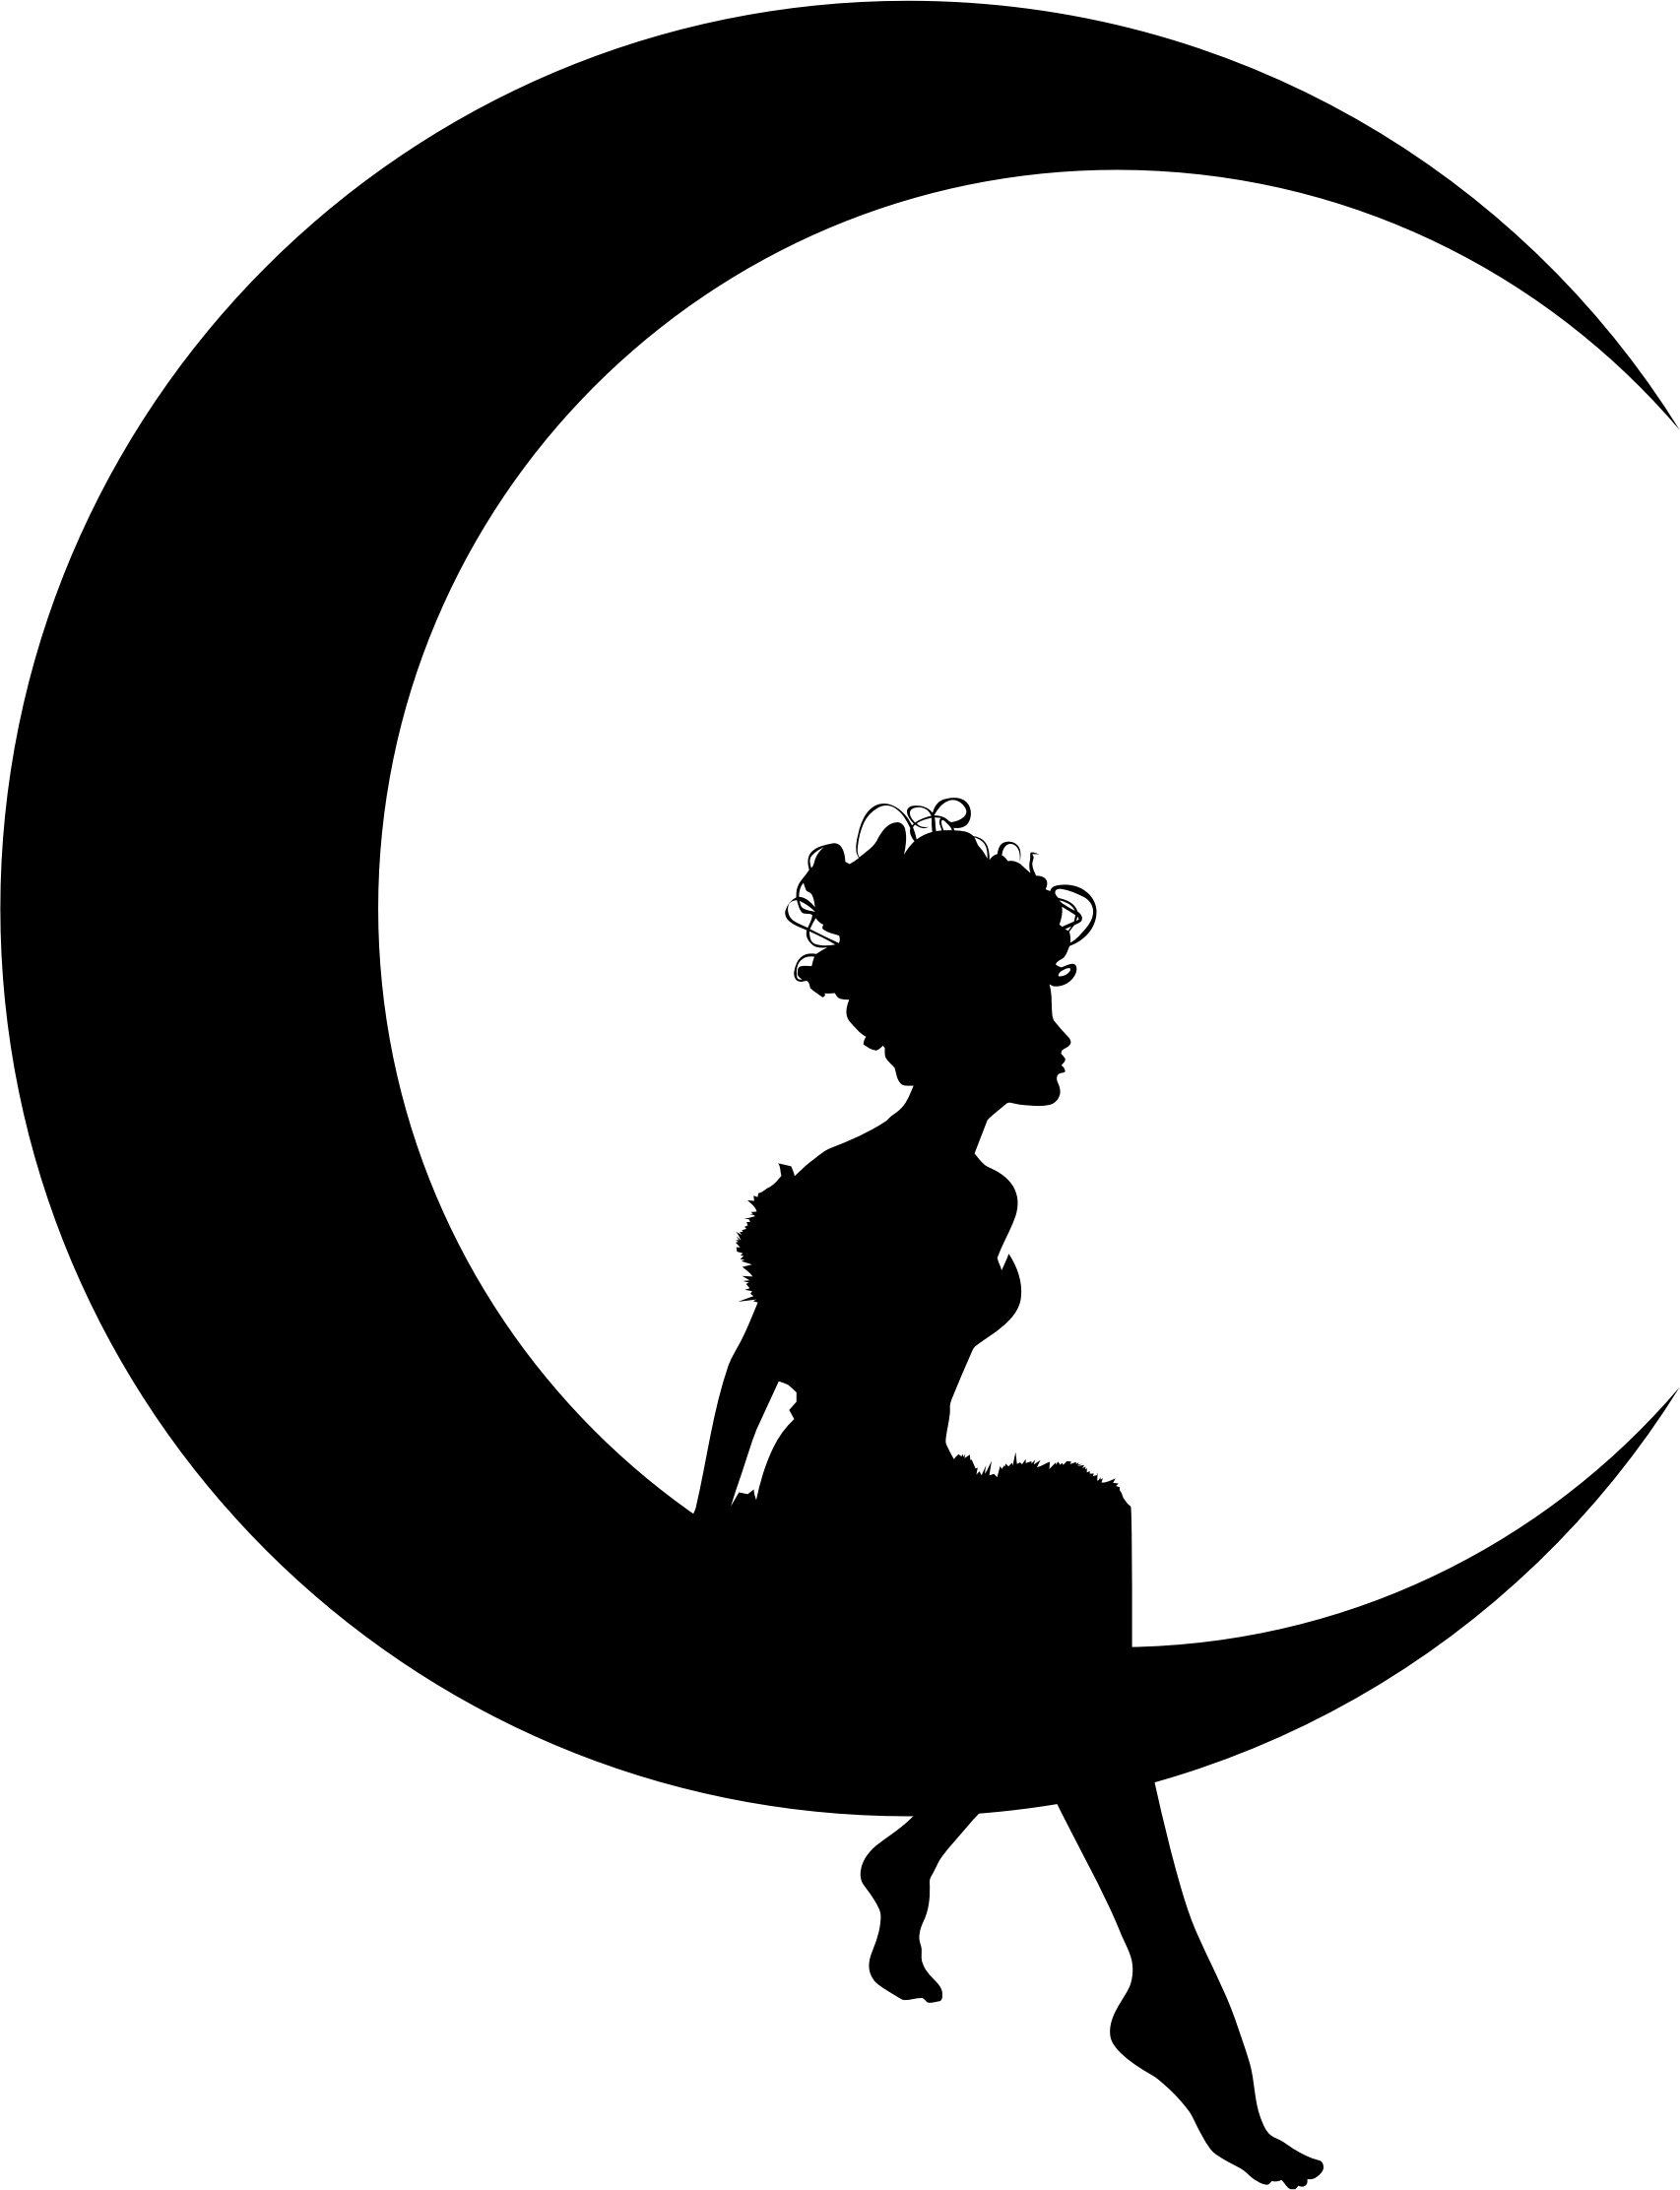 svg black and white Sitting on moon png. Fairy transparent crescent